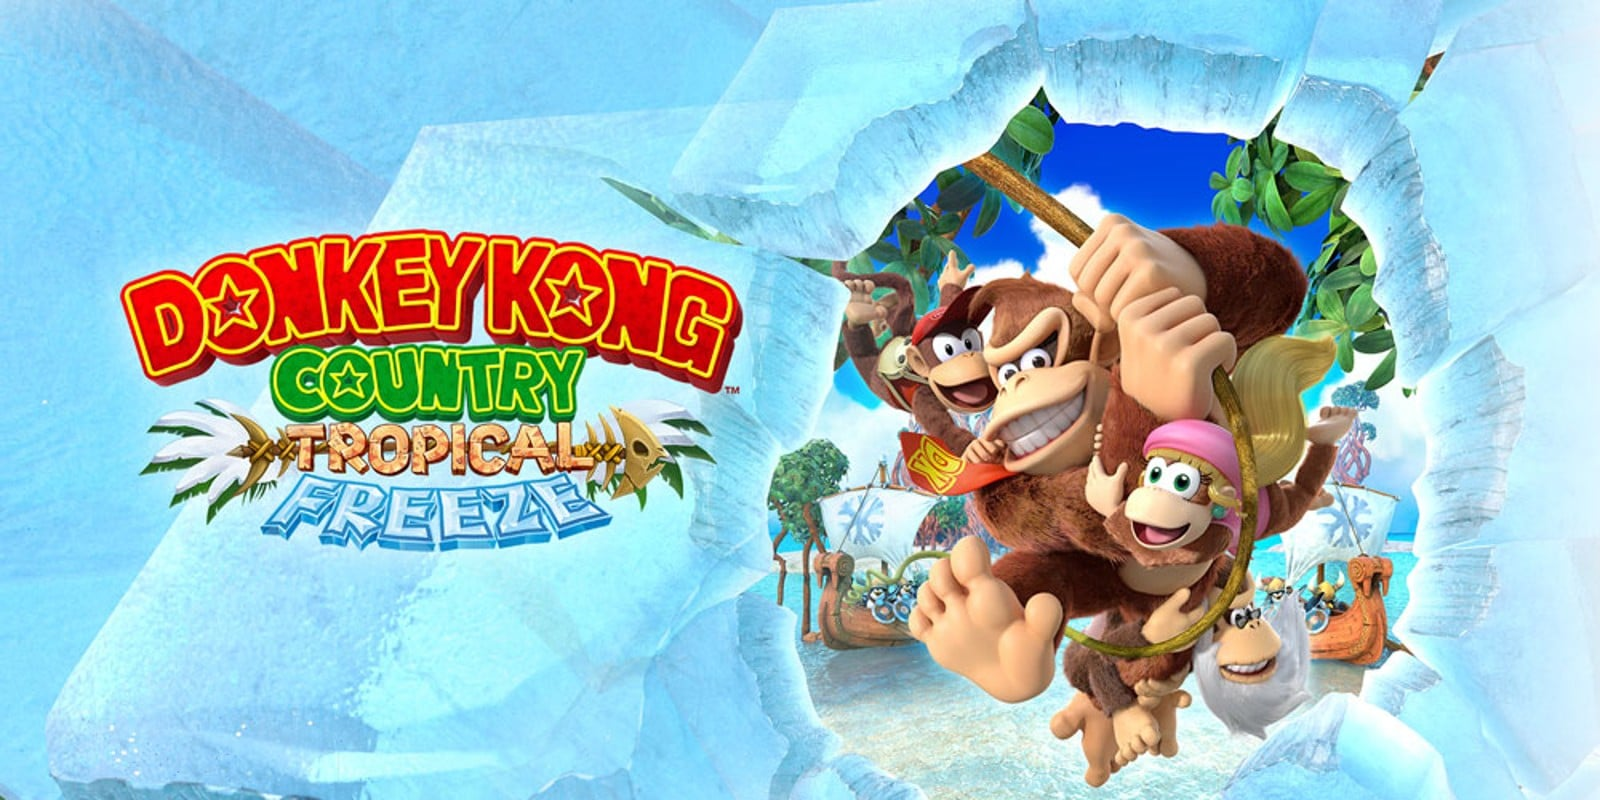 [FEIT] Donkey Kong Country: Tropical Freeze … Special Edition?